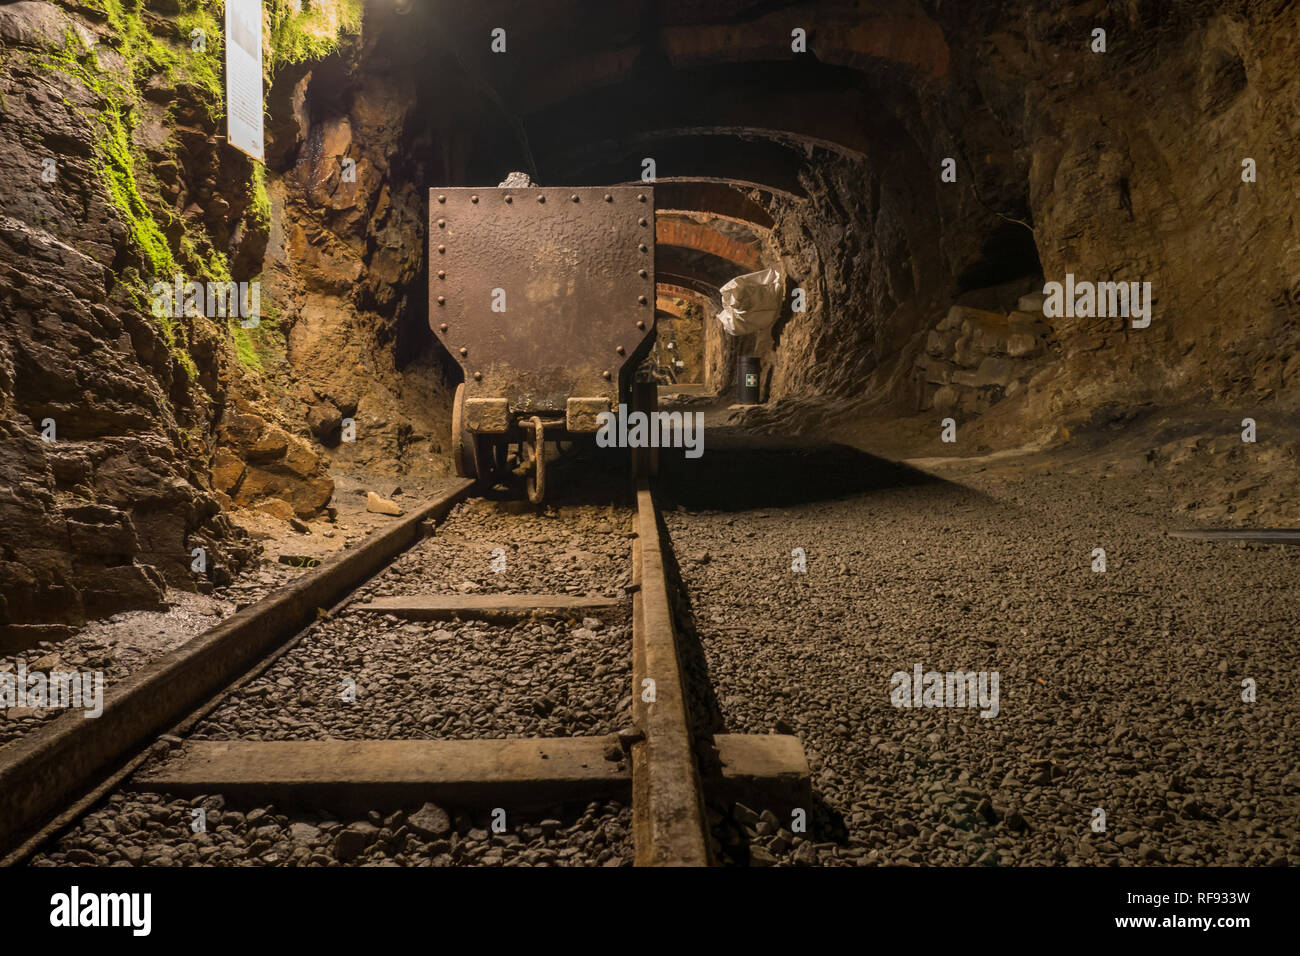 View of a mine shaft of the abandoned coal mine at the Museum für Industriekultur, Osnabrück - Stock Image